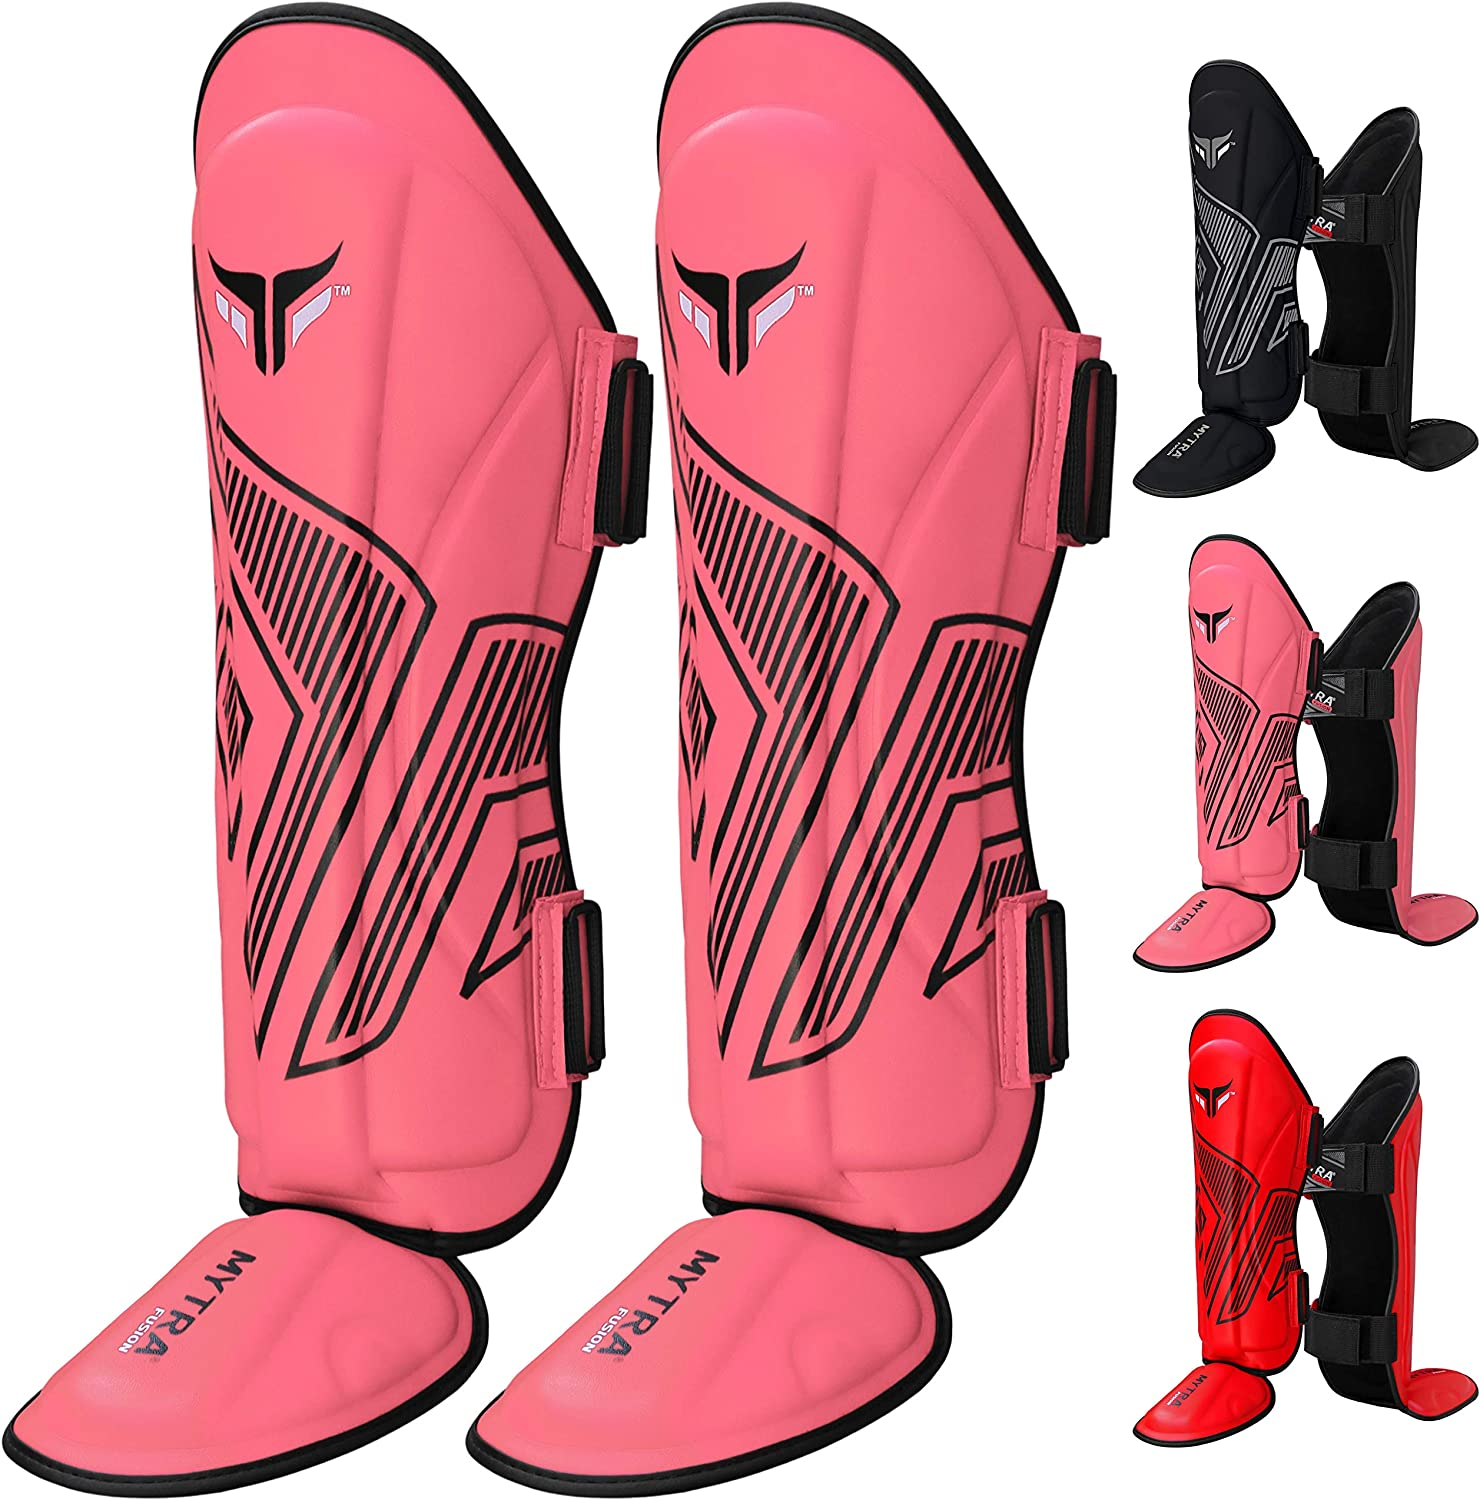 Mytra Fusion Adult Topics on Finally resale start TV Shin Pad Guard for Boxi Protector